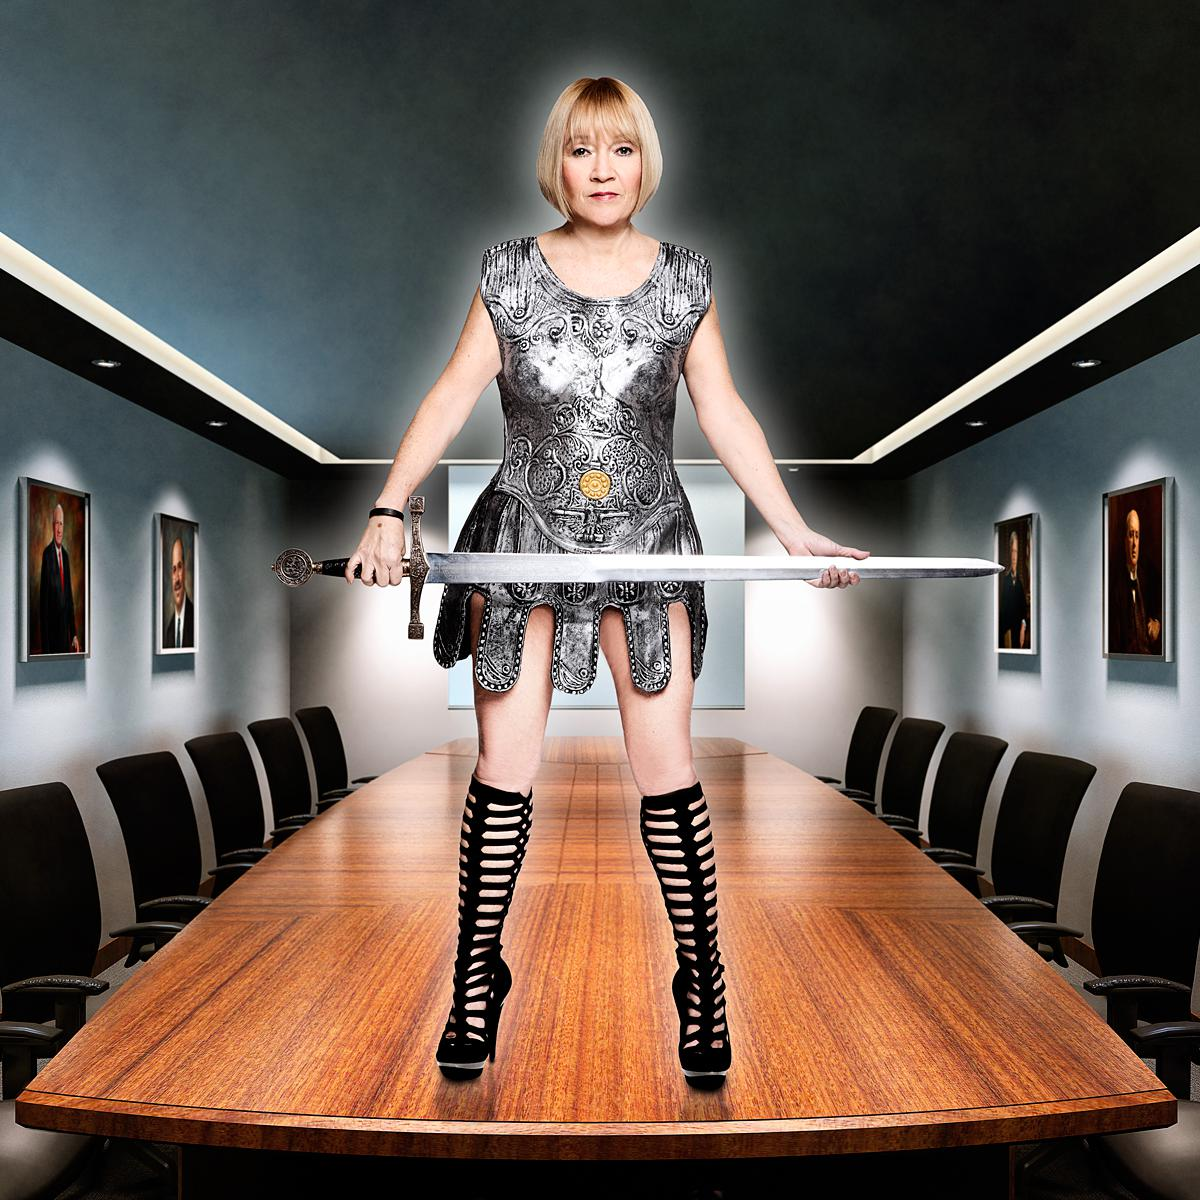 Portrait of Cindy Gallop, Entrepreneur and Business Activist by Julian Hanford